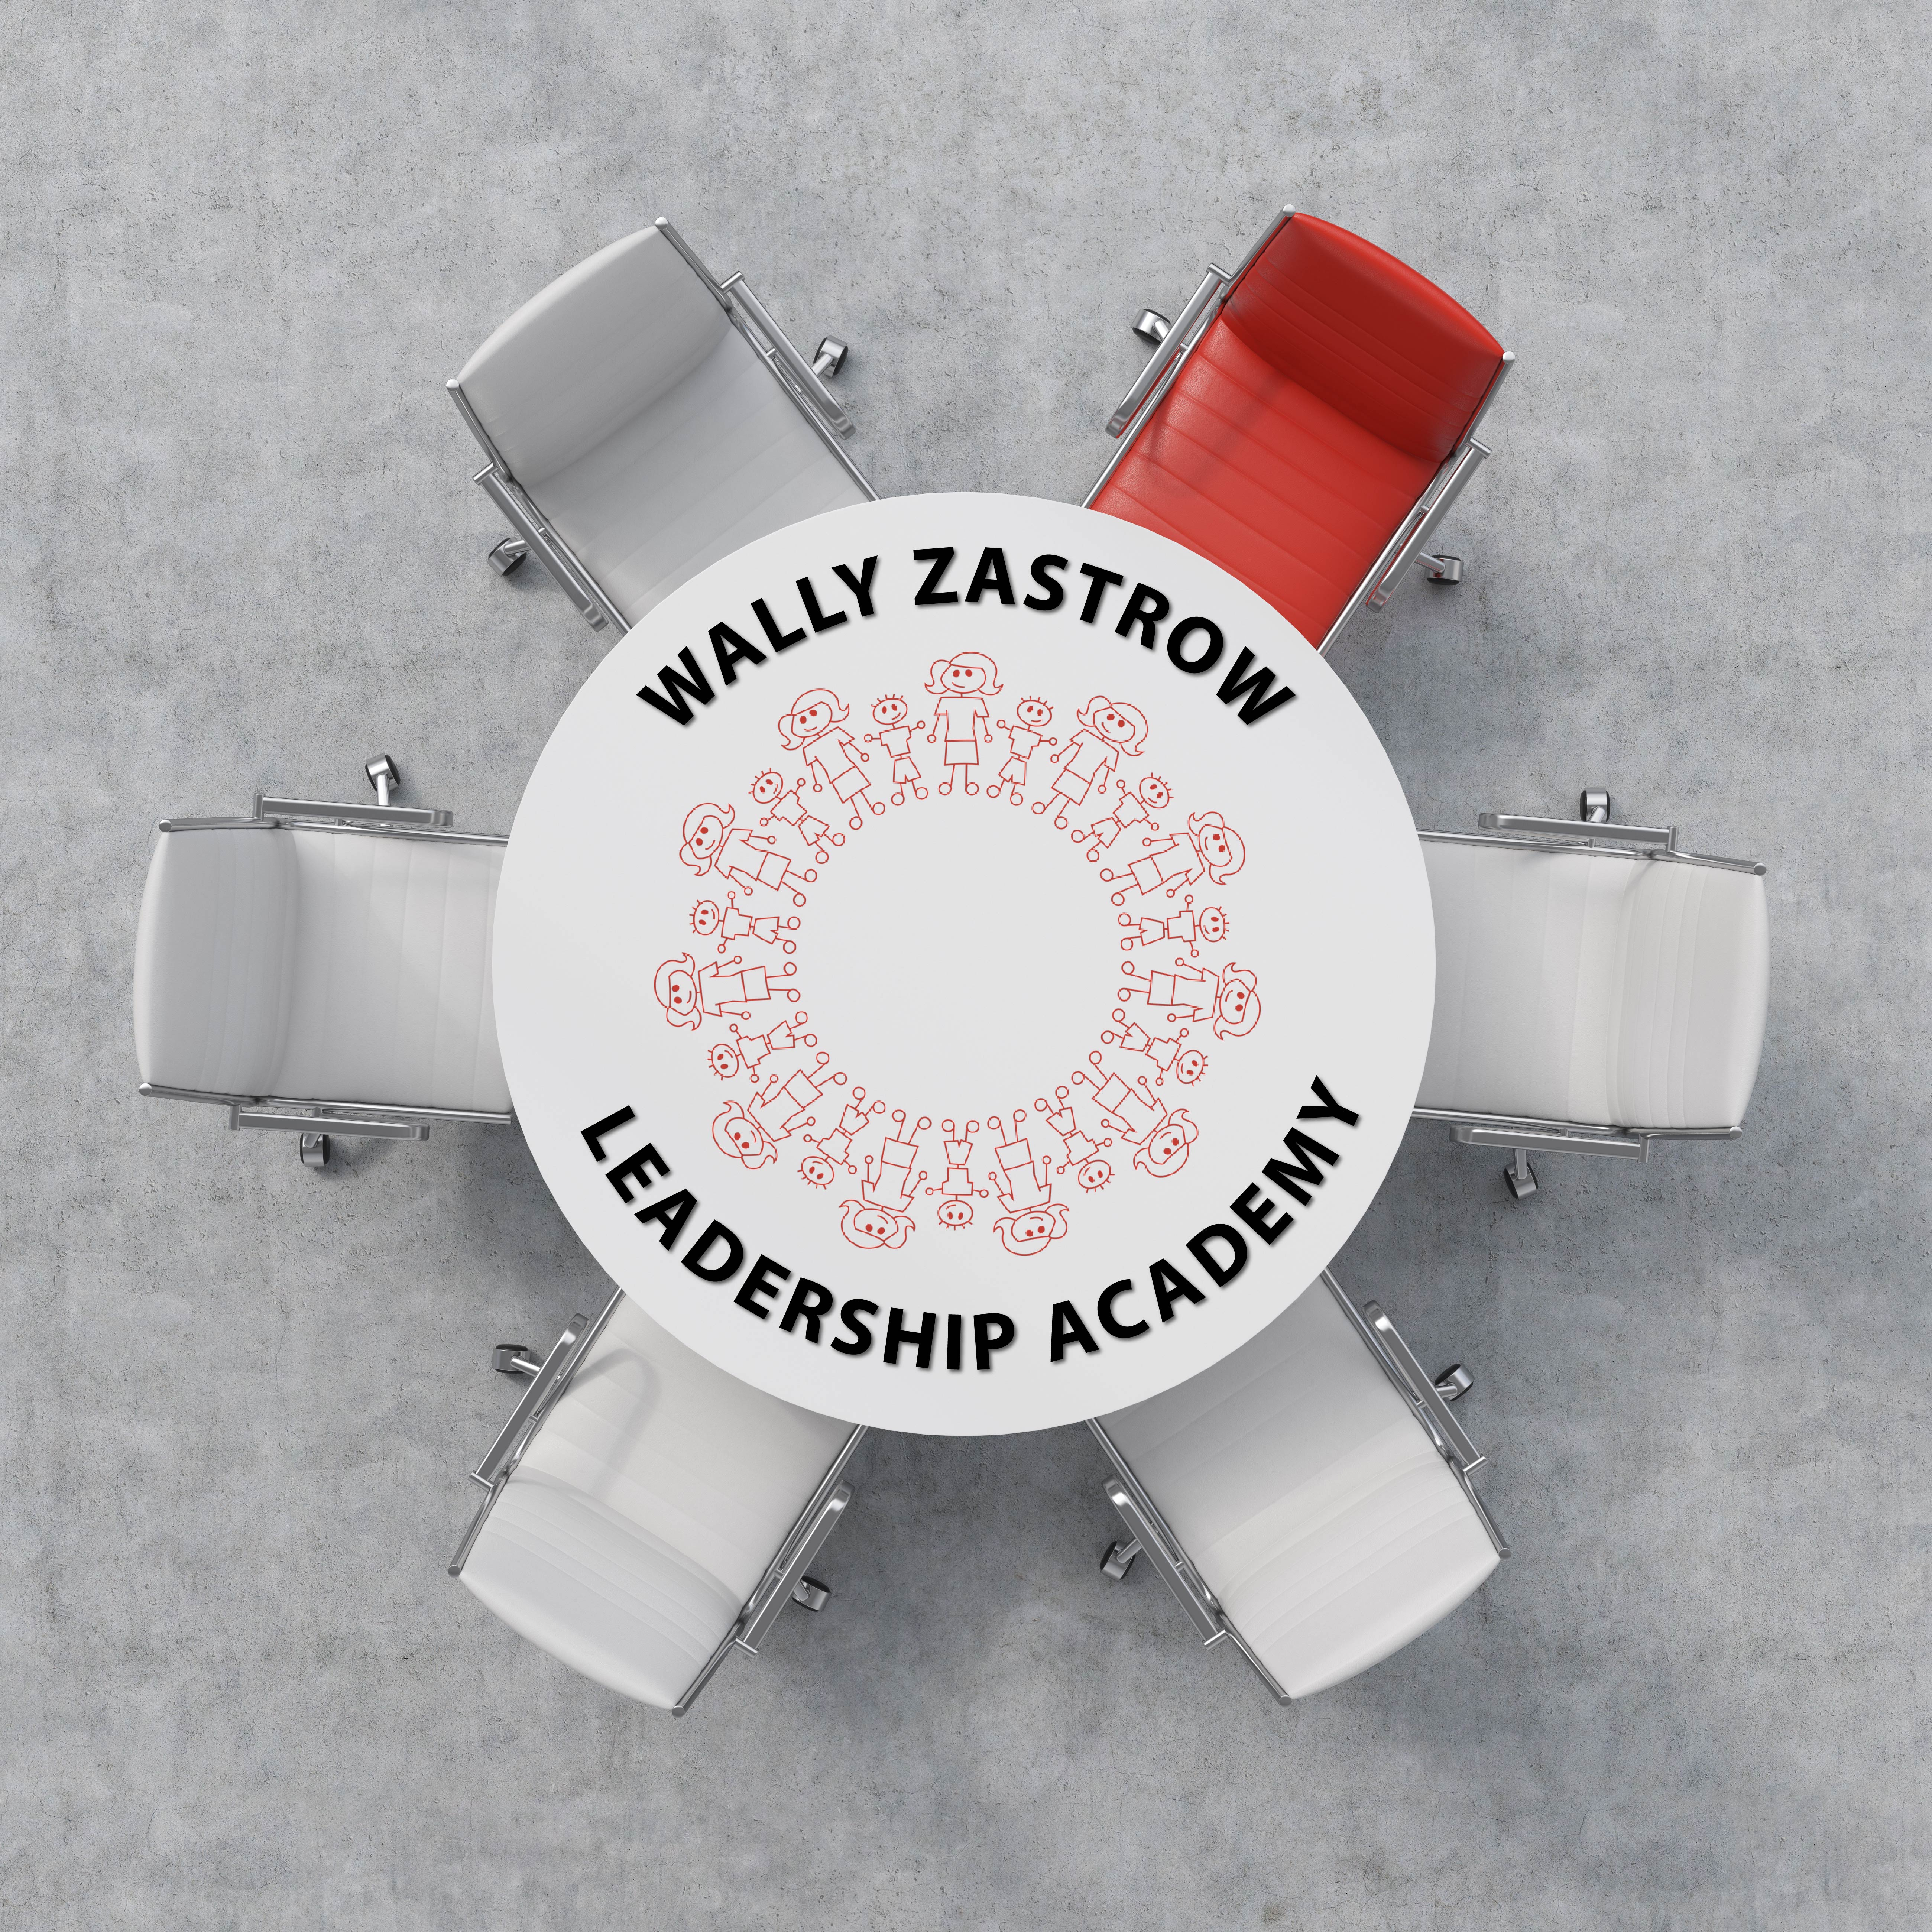 Wally Zastrow Leadership Academy: Leader as a Communicator